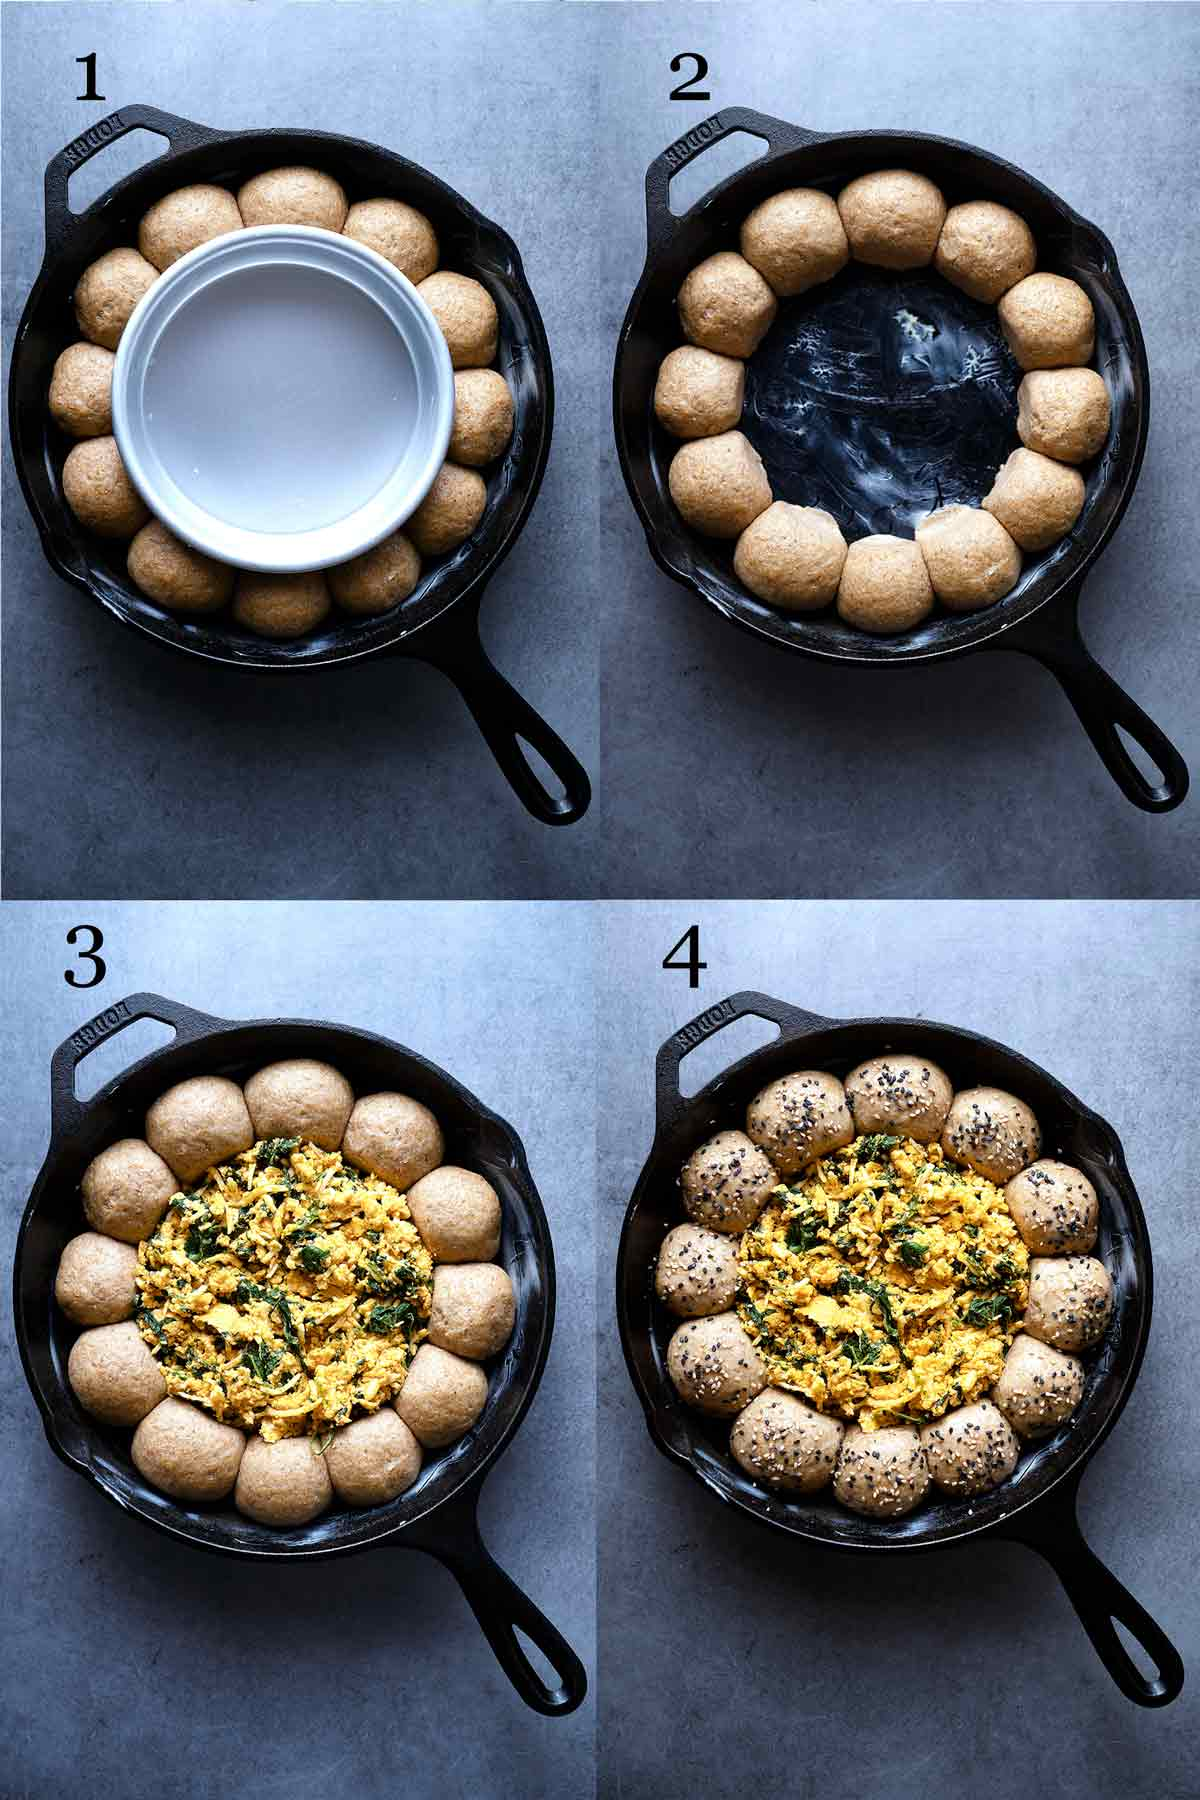 Steps for making skillet pull apart whole wheat buns